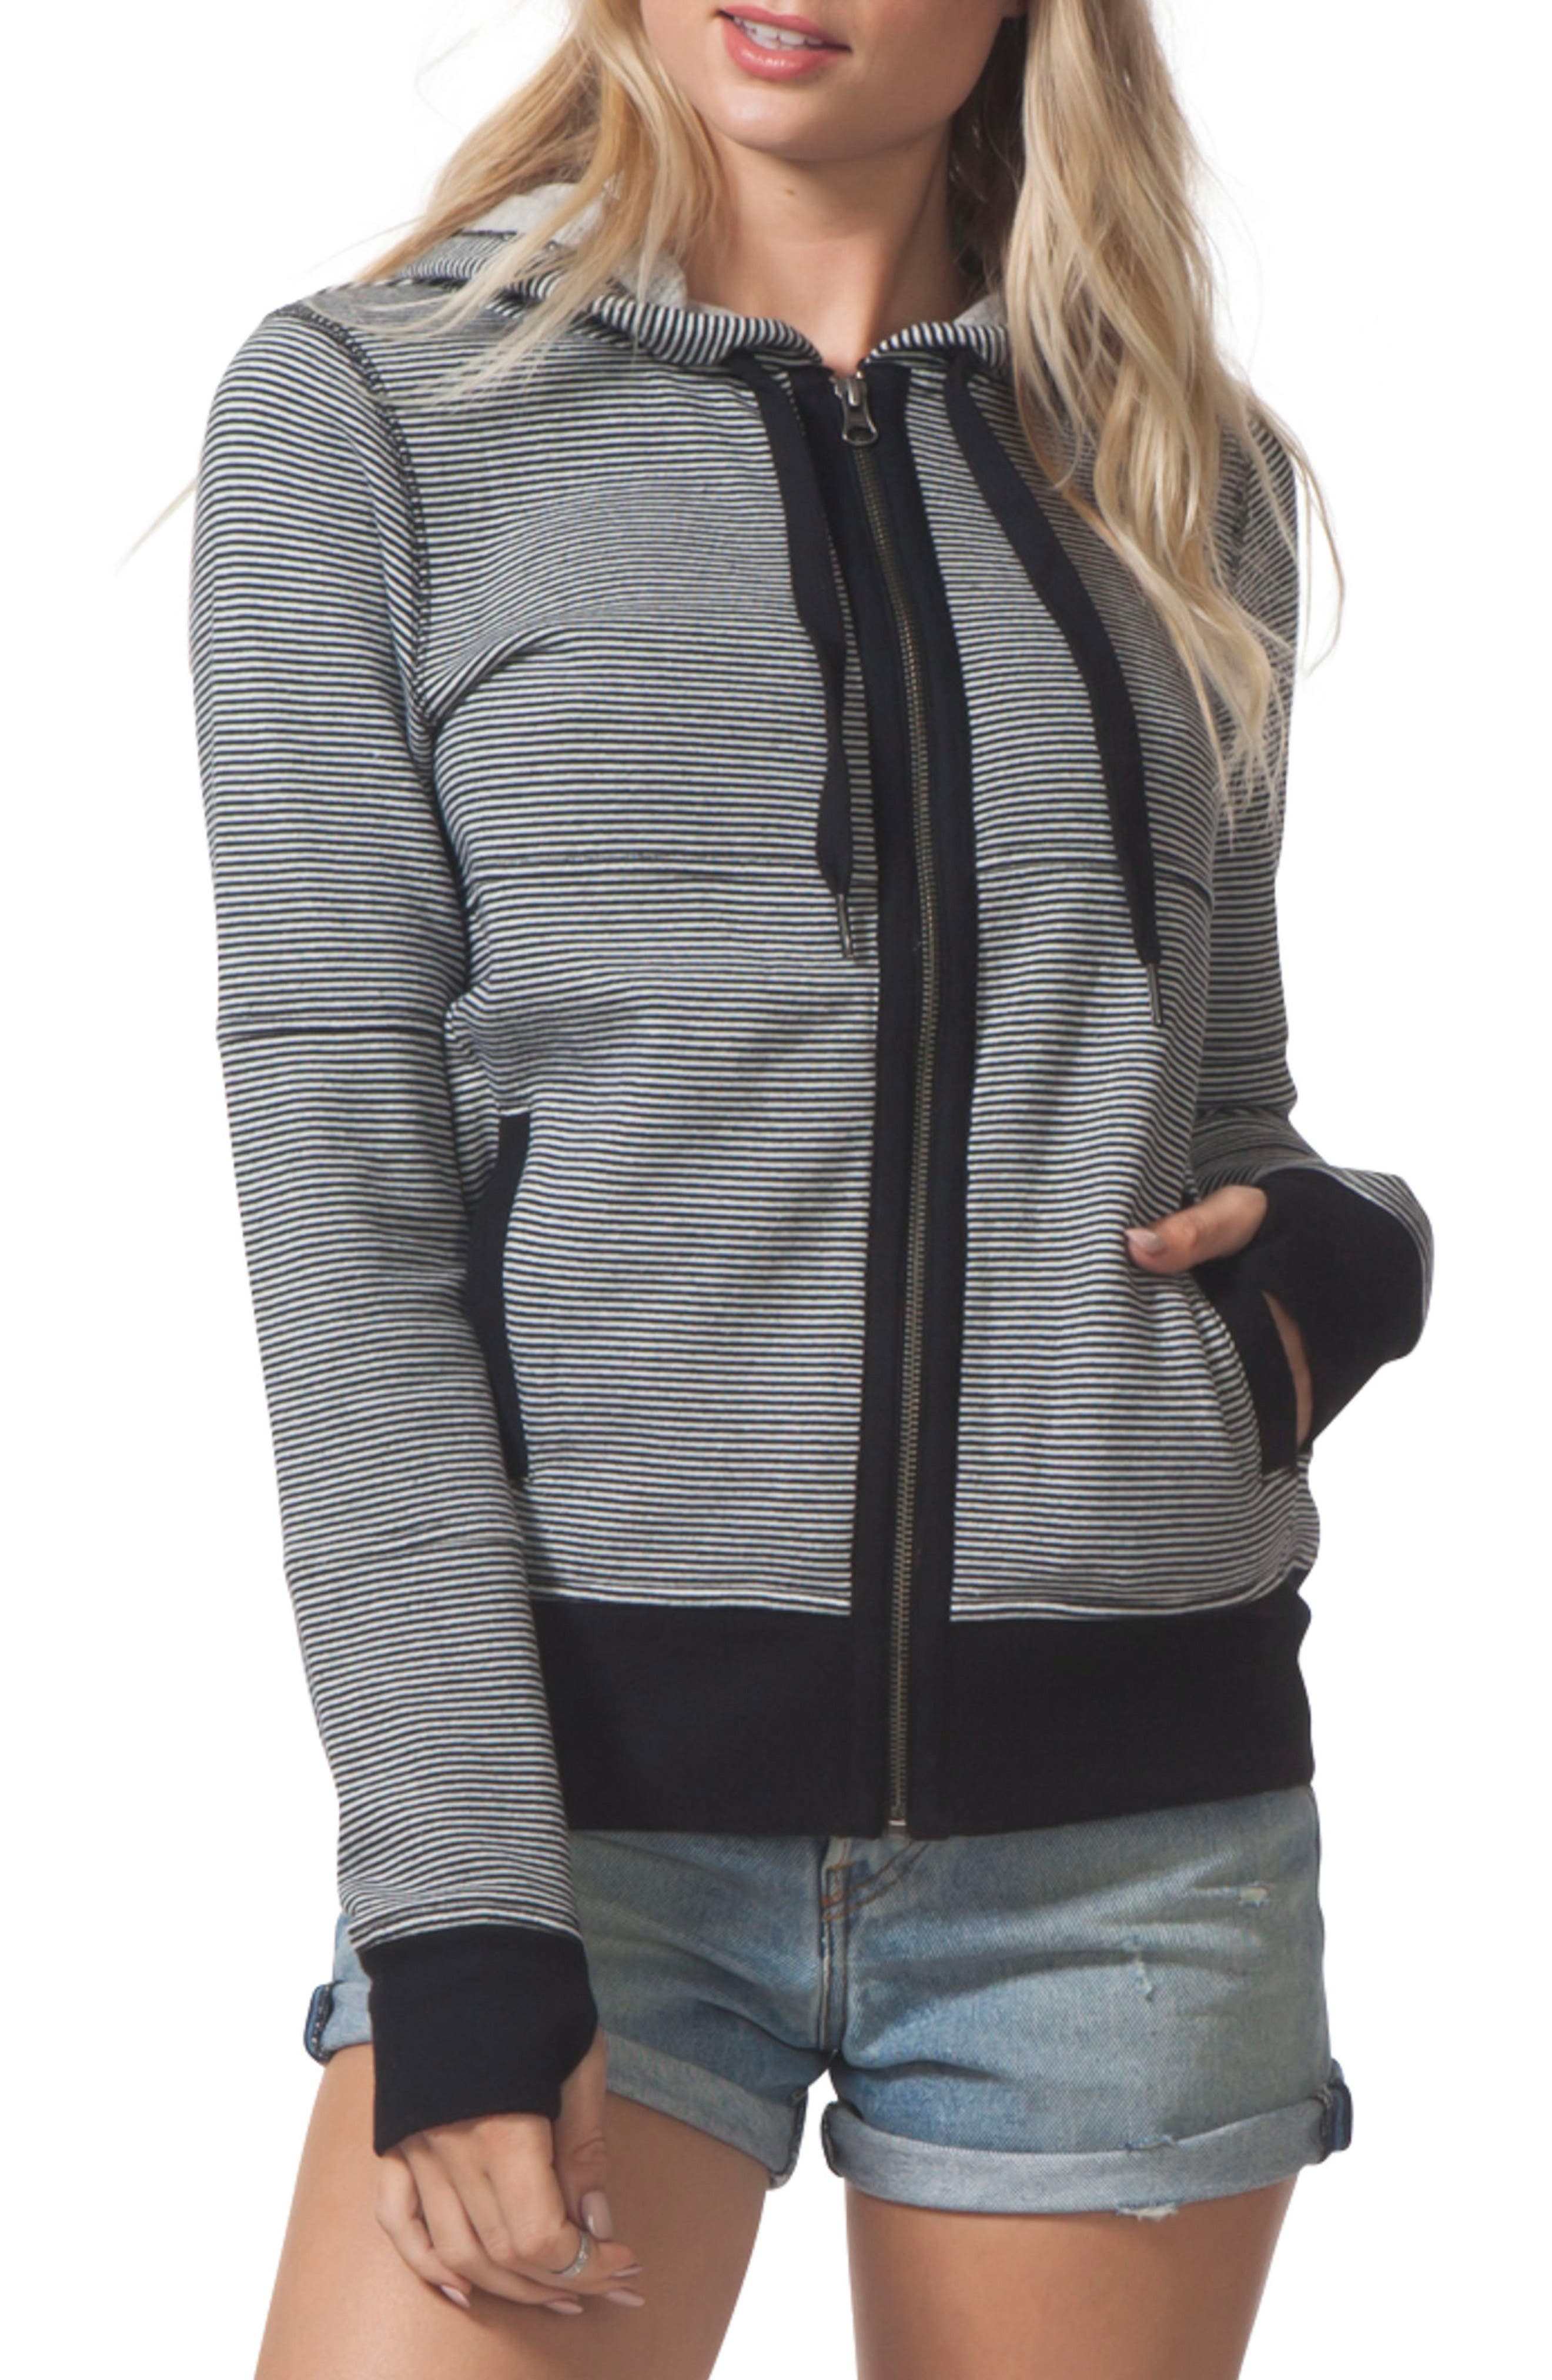 Surf Threads Hoodie,                         Main,                         color, 001